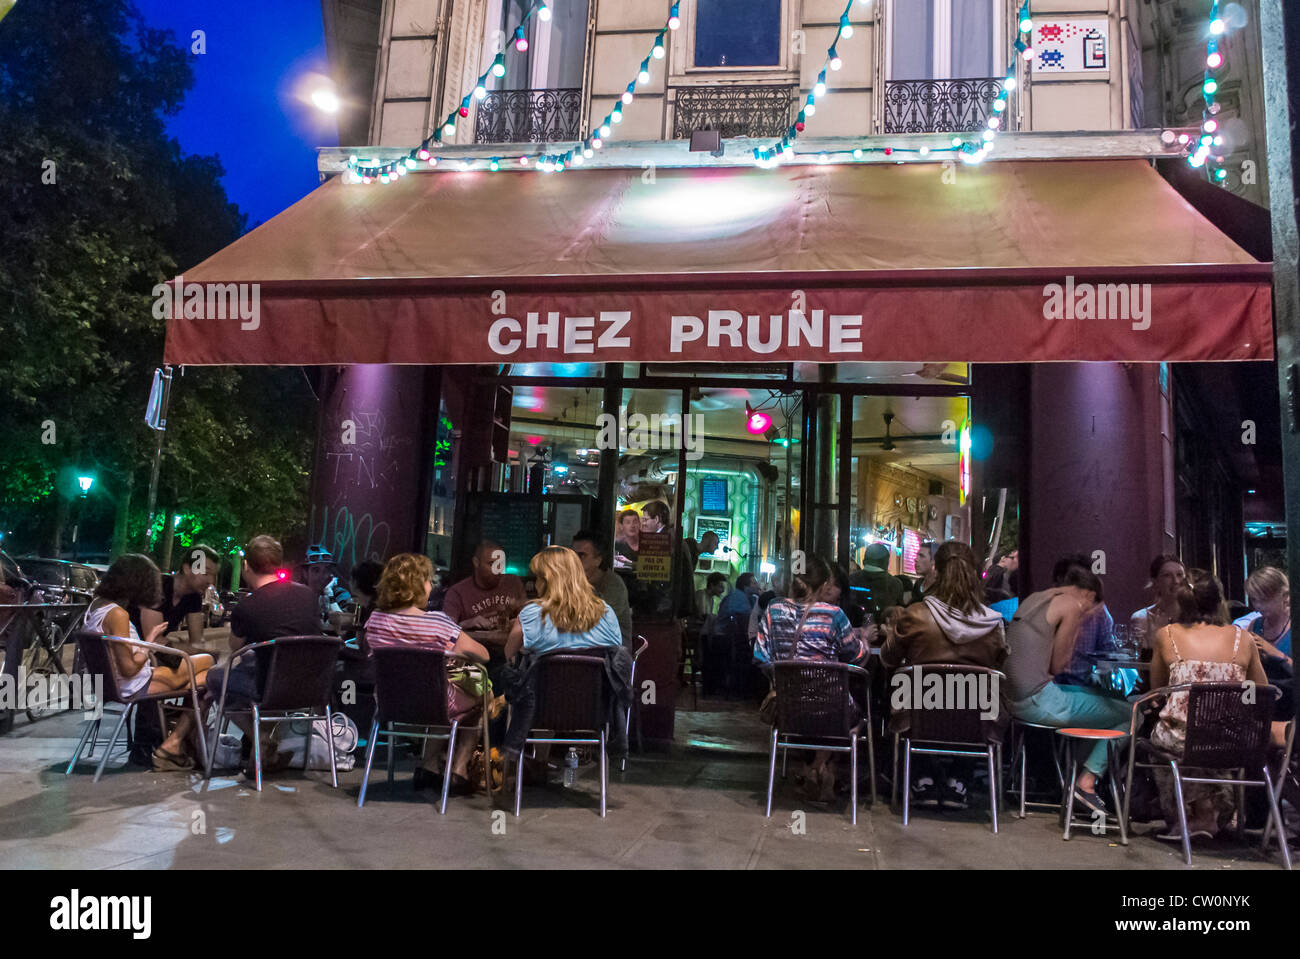 Terrasse Canal Saint Martin paris, cafe, france, crowd young people relaxing on terrace